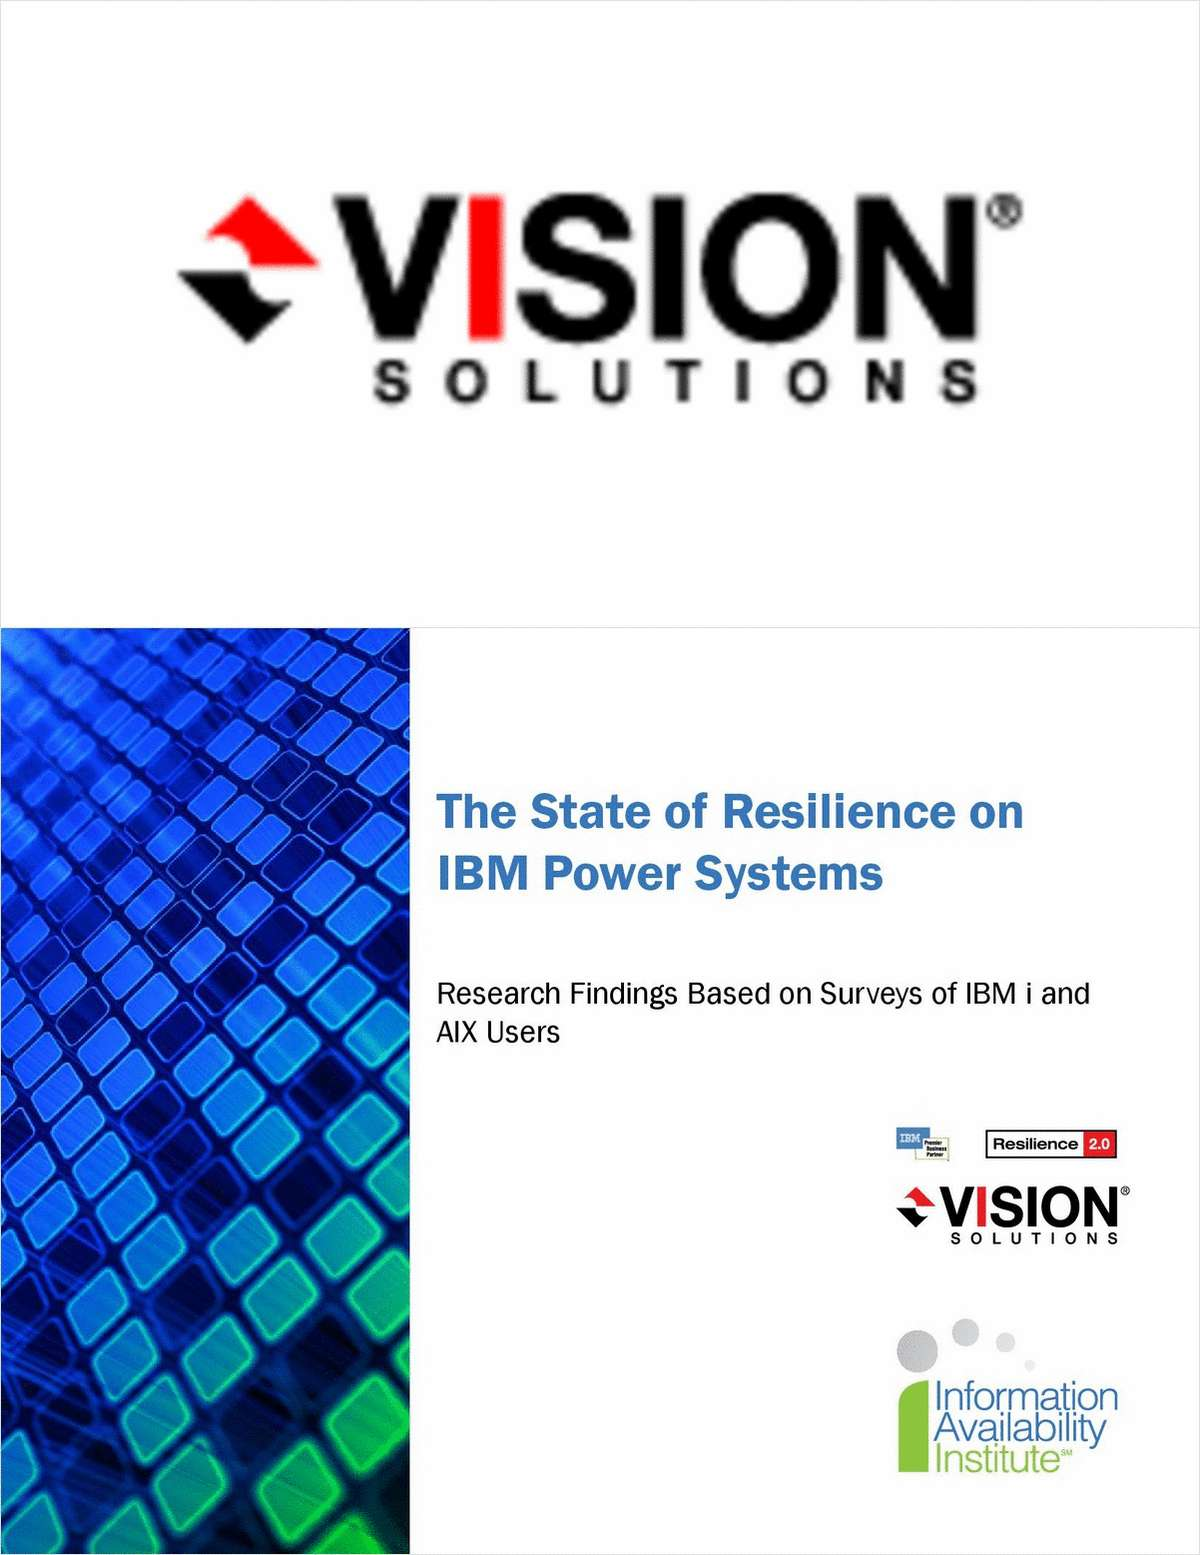 The State of Resilience on IBM Power Systems